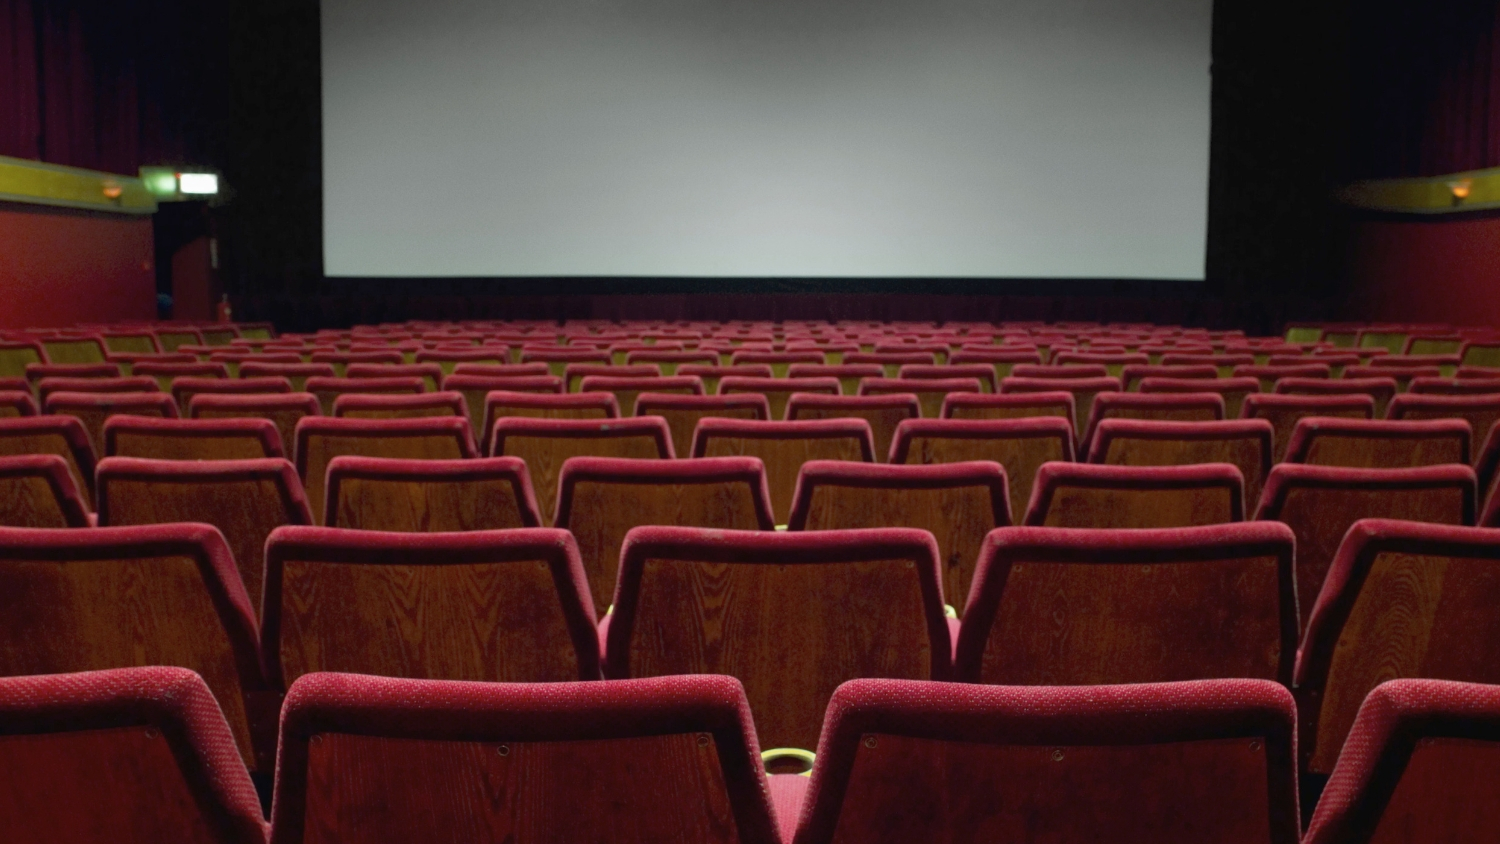 rows of red chairs in an empty movie theater